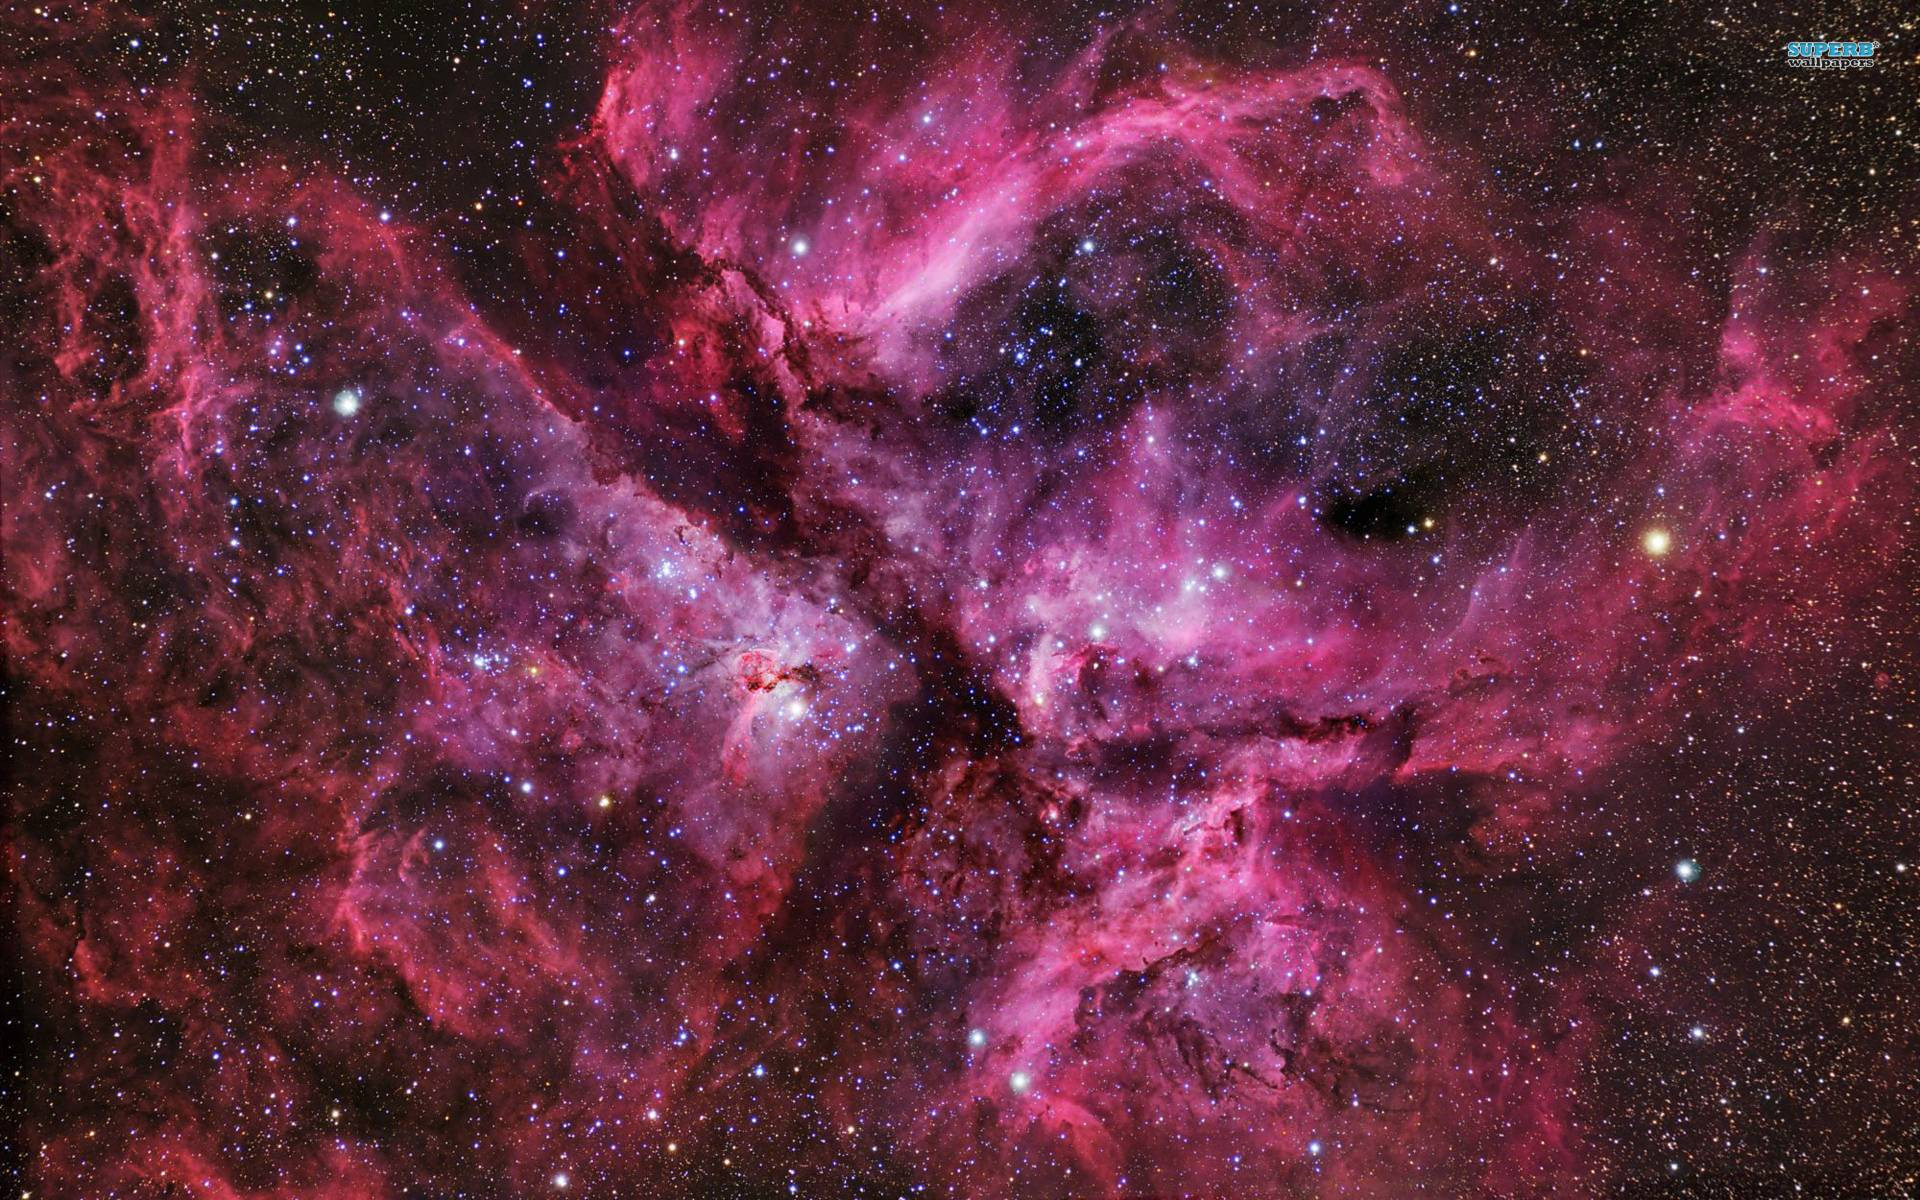 nebula hd wallpaper optical illusions - photo #1